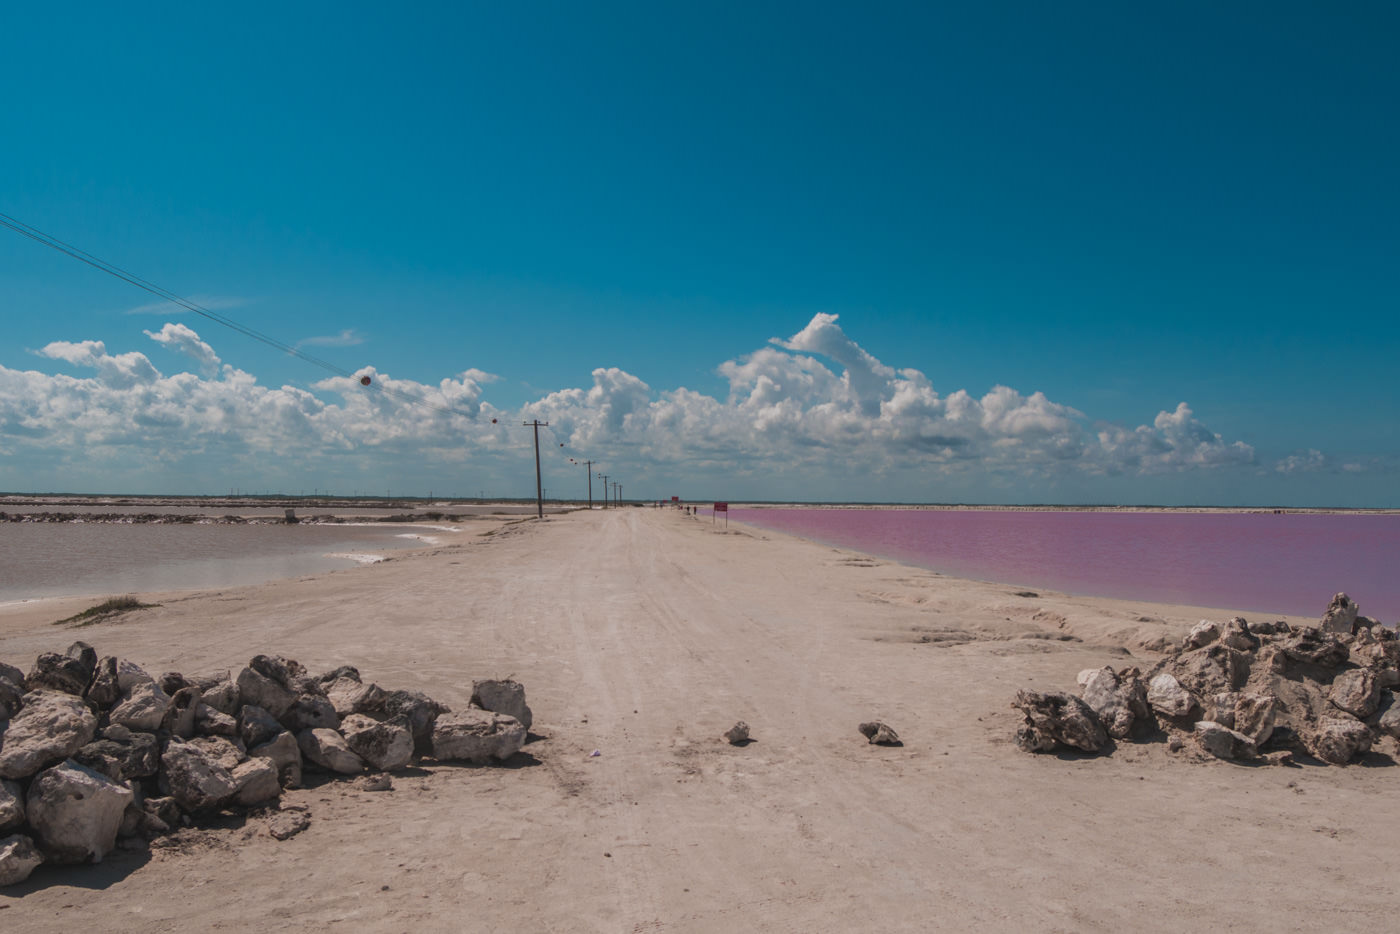 Pinke Lagune von Las Coloradas in Mexiko